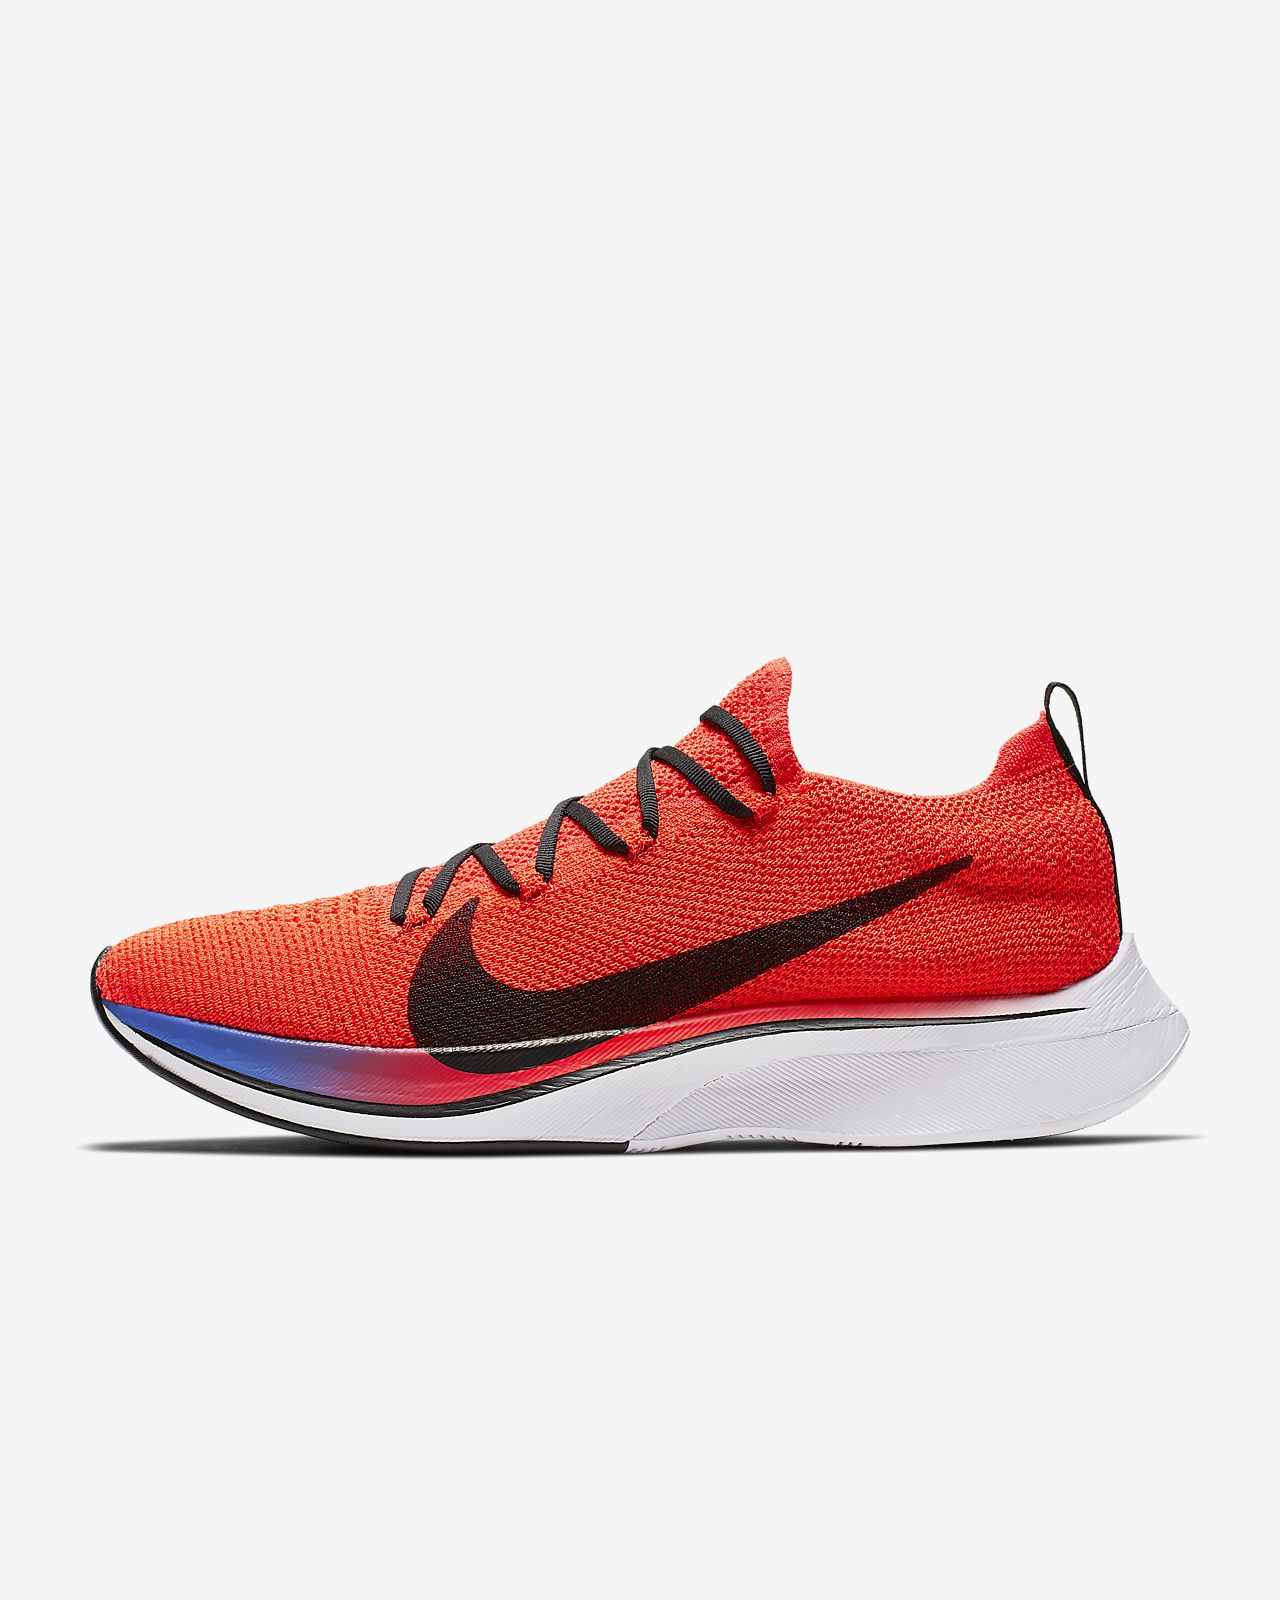 best loved 0724a 7f5c8 Nike Vaporfly 4% Flyknit Running Shoe